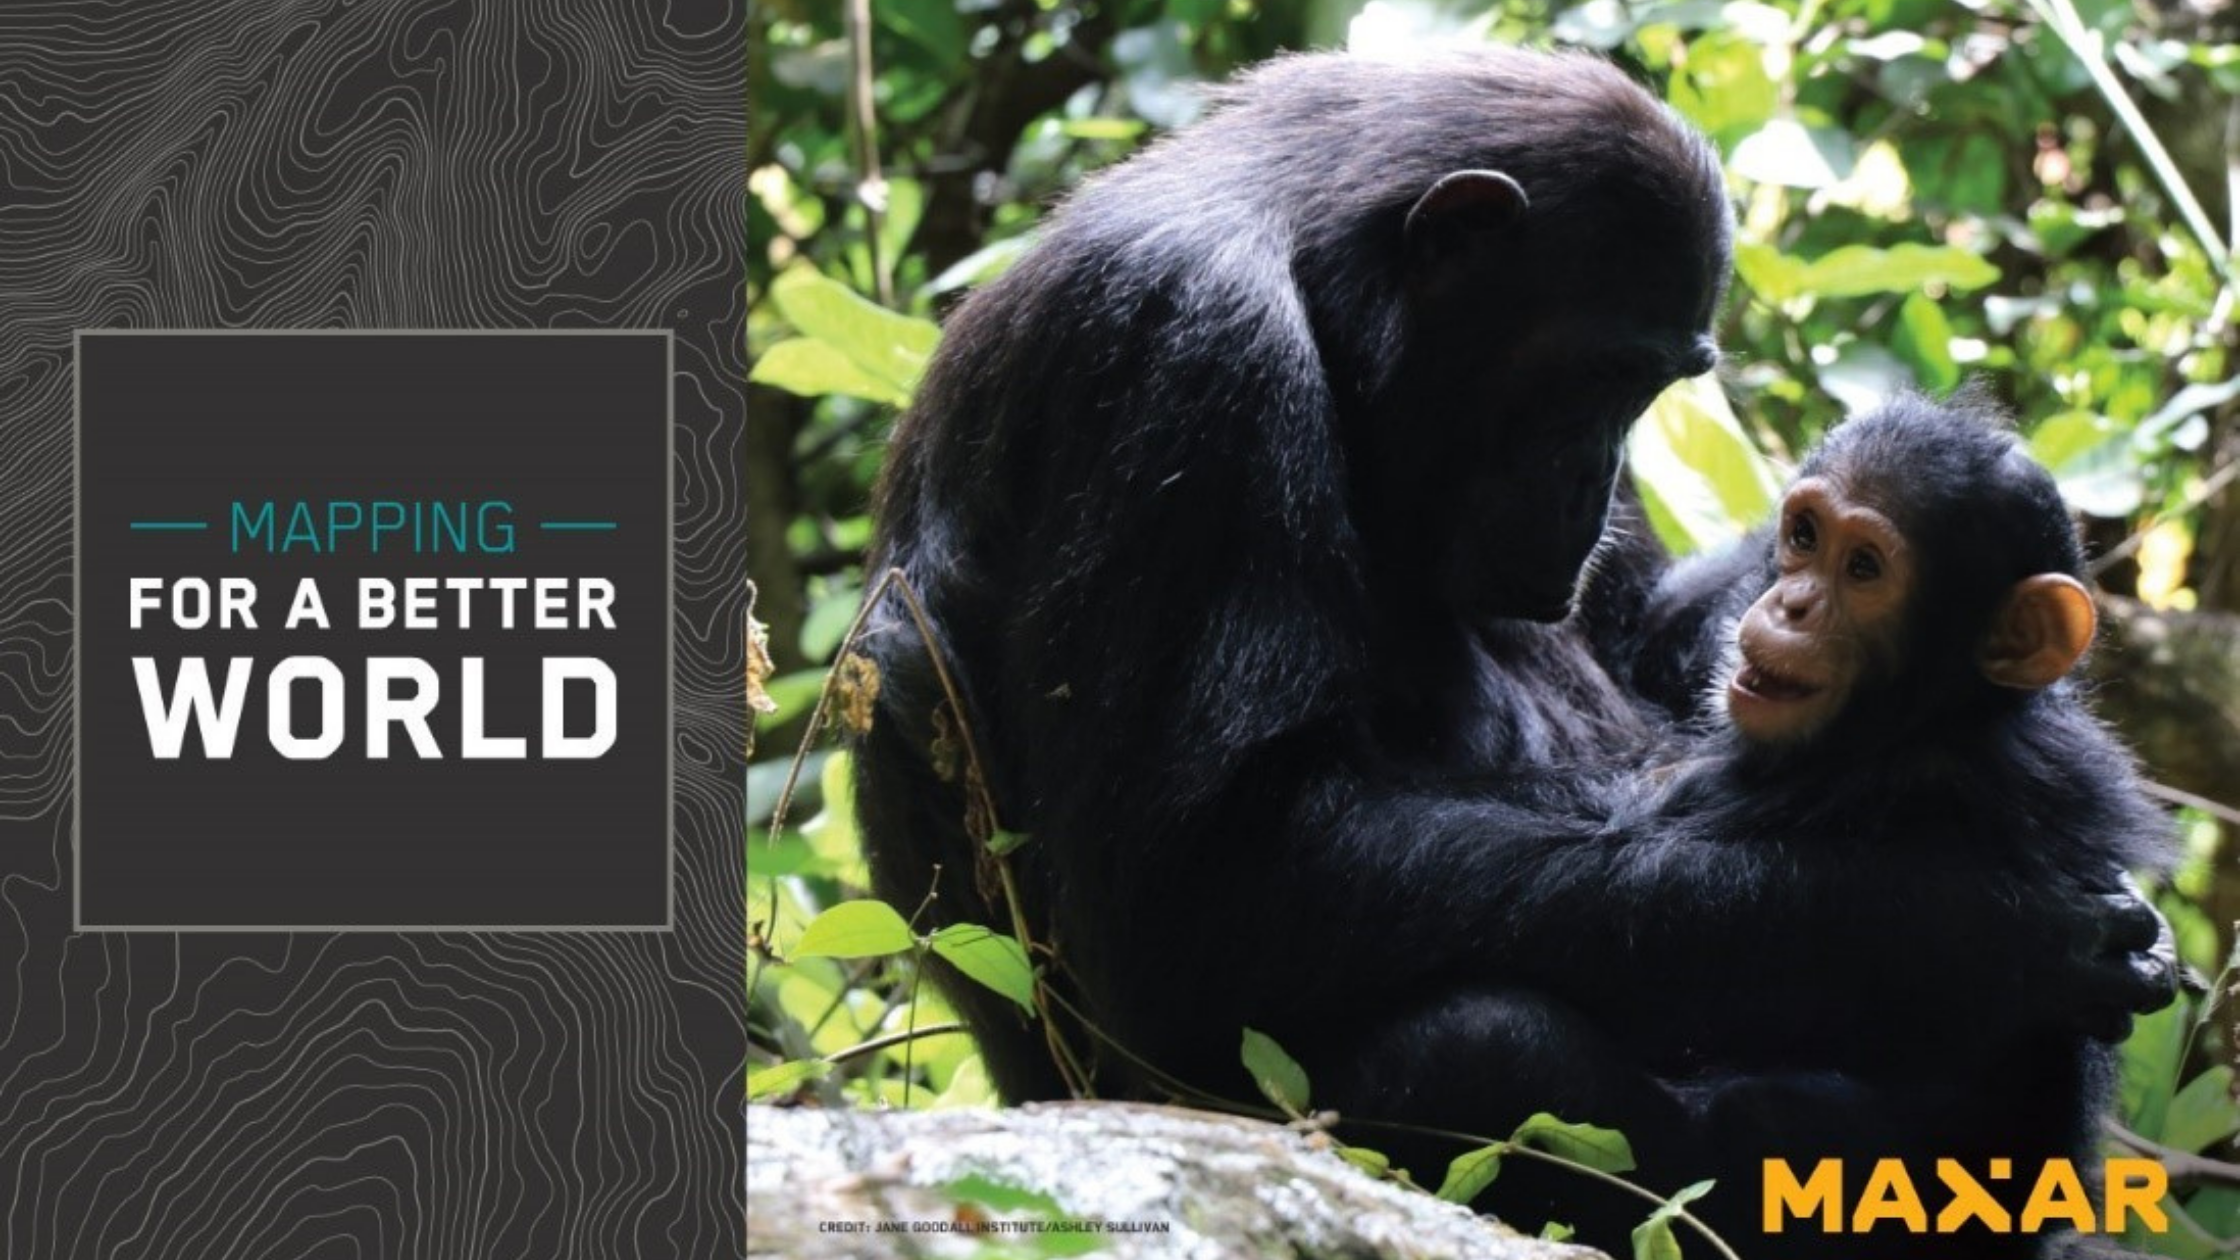 Maxar Employees and Jane Goodall Institute Update Uganda Map for Chimpanzee Habitat and Forest Protection and Restoration